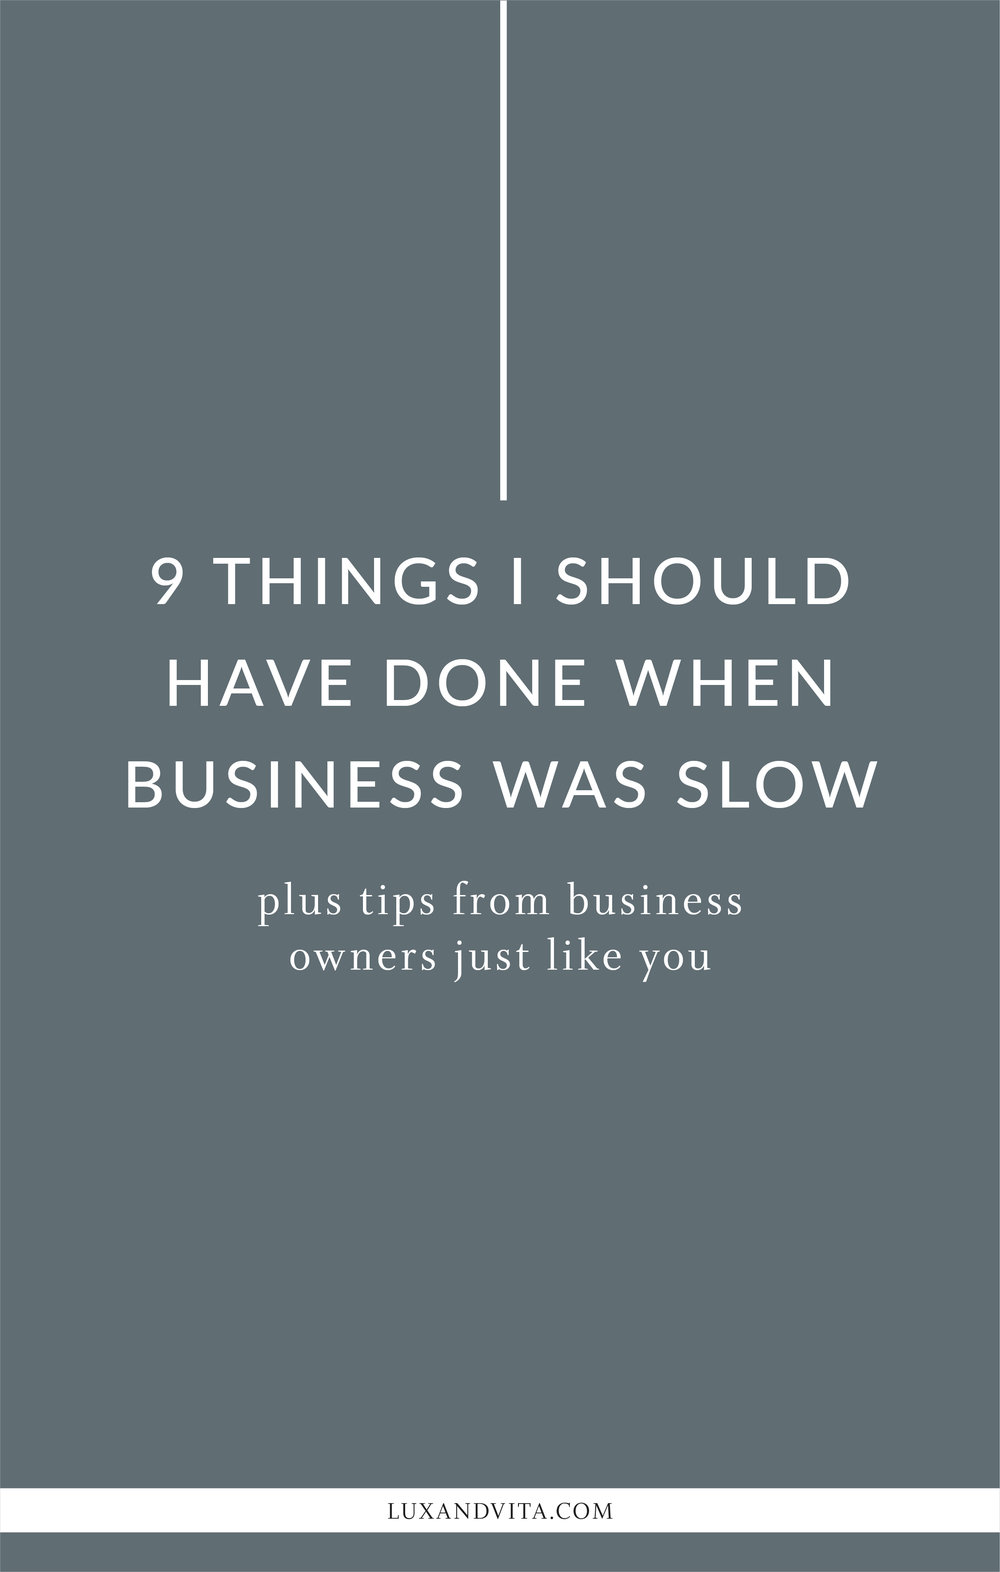 9 I should've done when business was slow | Virtual Assistant, Project Manager, Lux + Vita